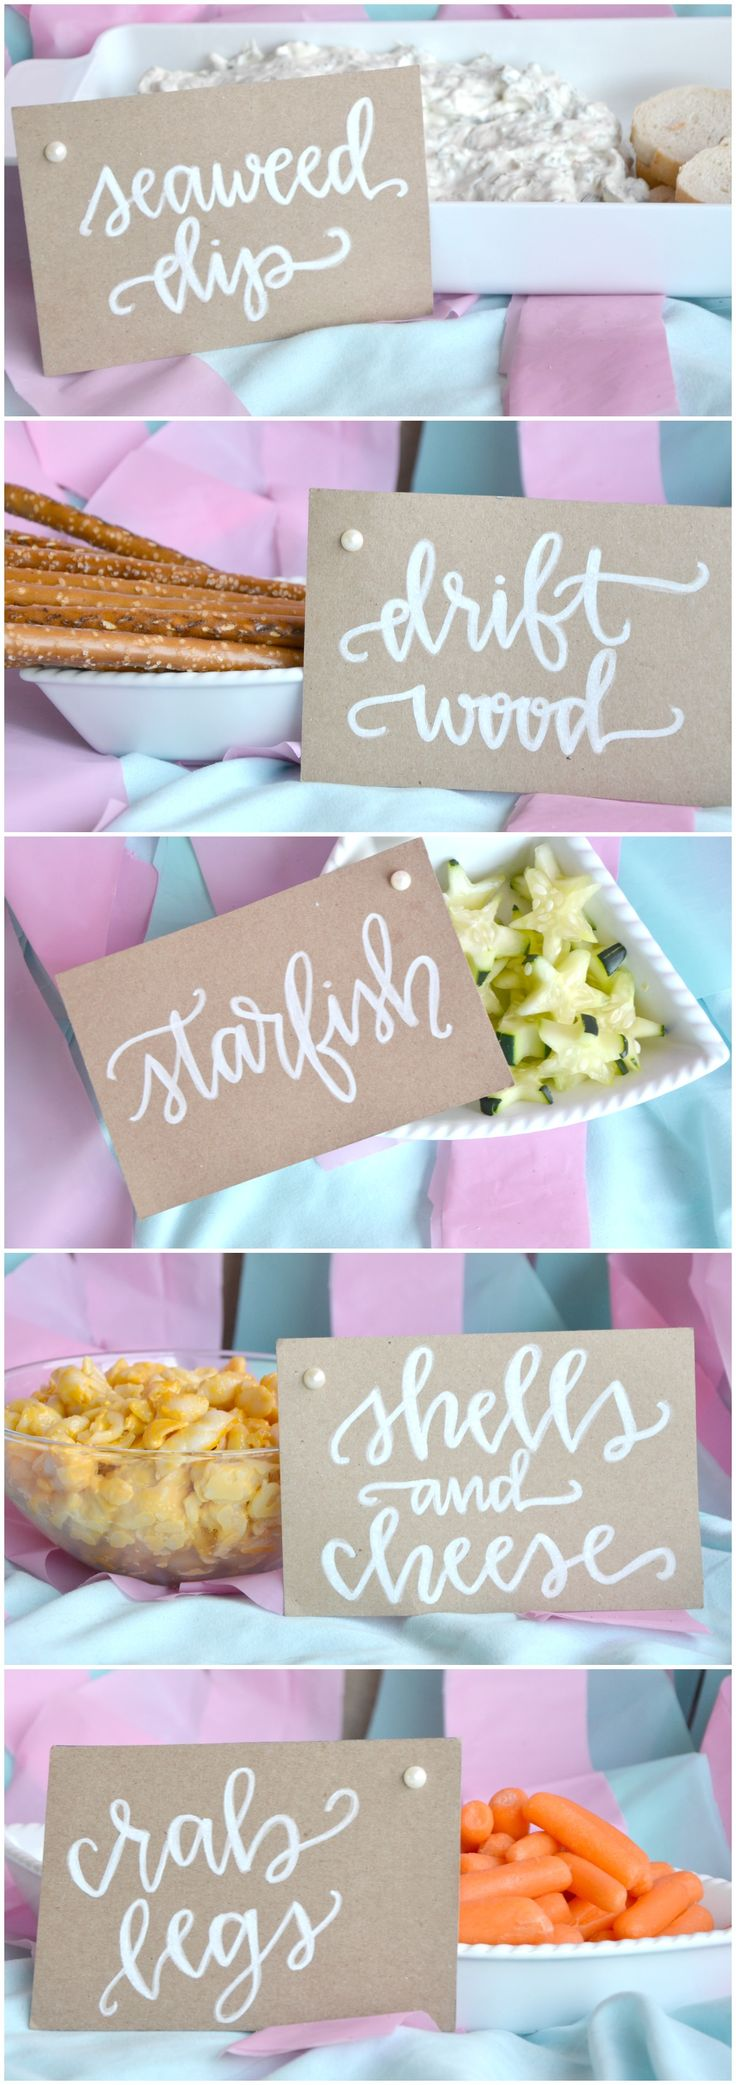 First Birthday Mermaid Party food is perfect for a mermaid themed party! The custom food cards by Alexis + Bolt are a perfect way to display your party snacks!